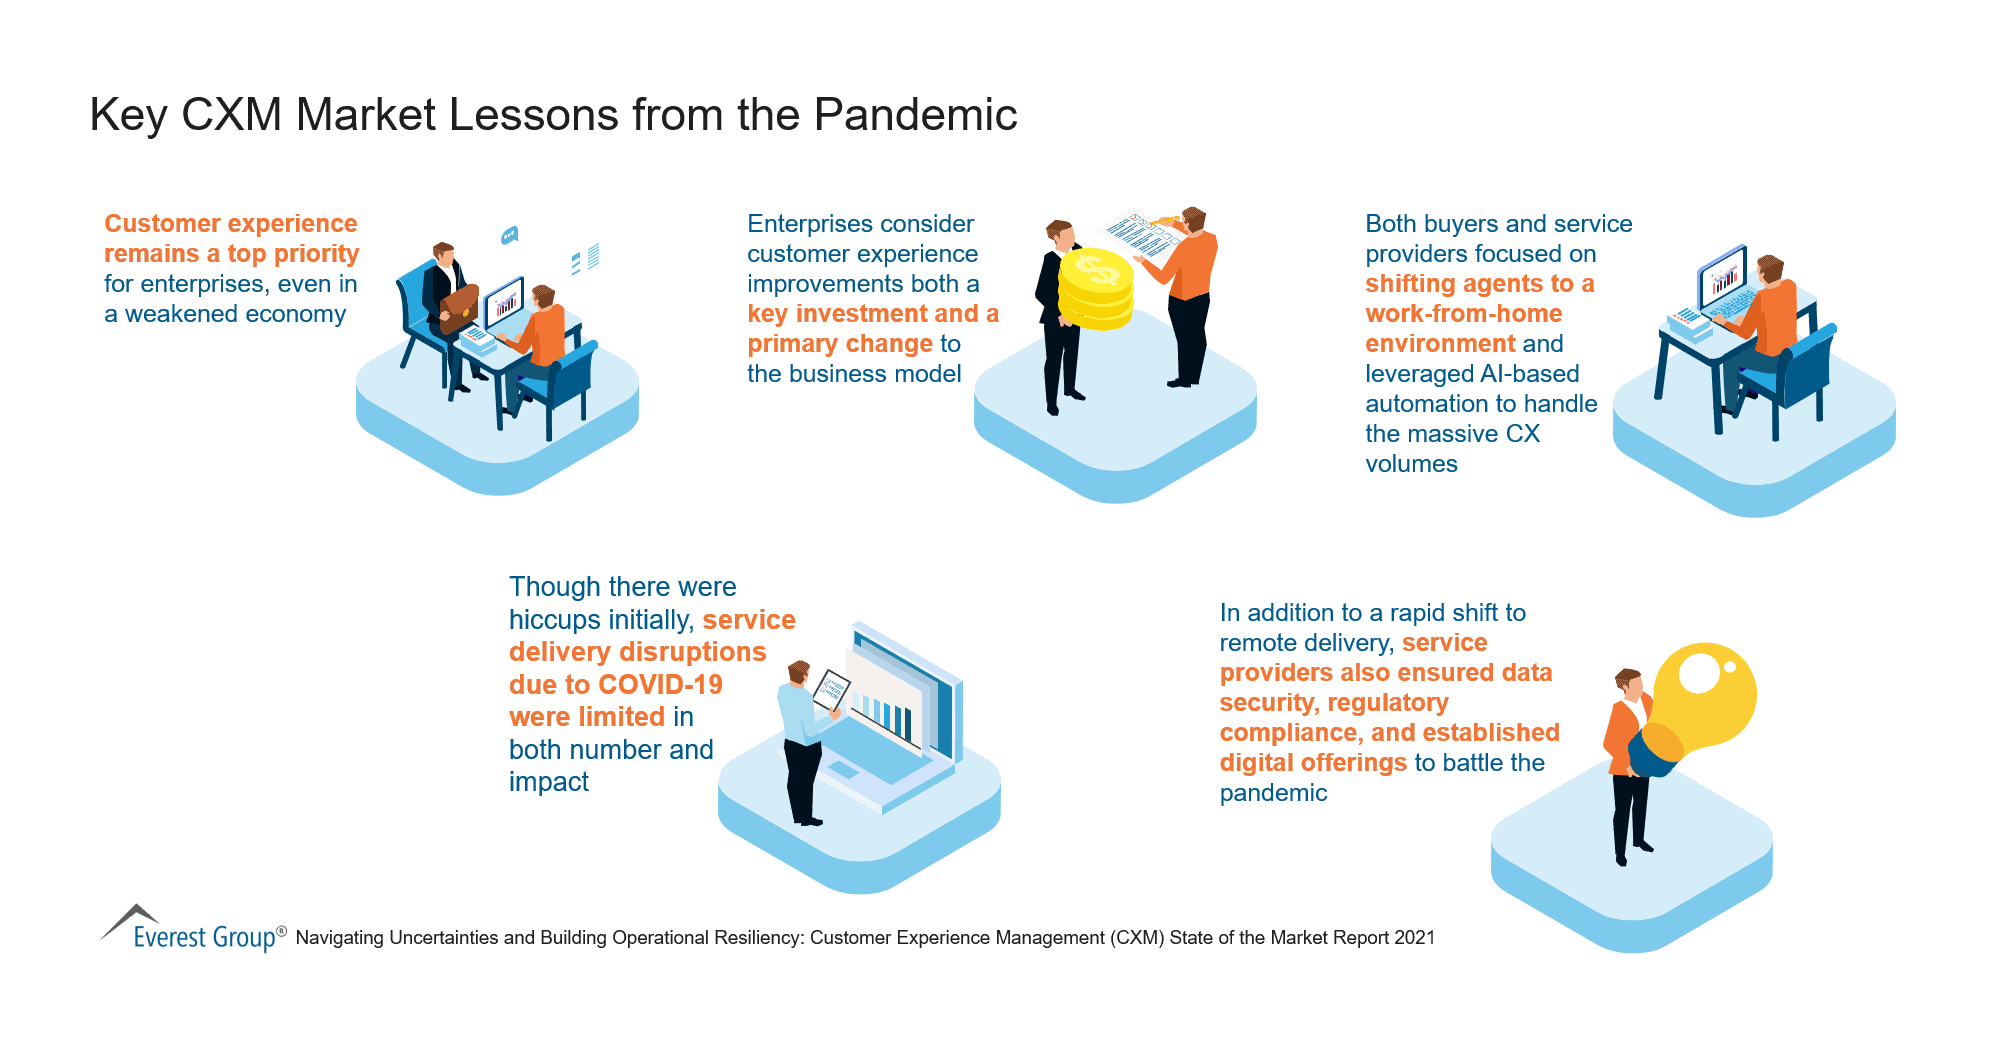 Key CXM Market Lessons from the Pandemic